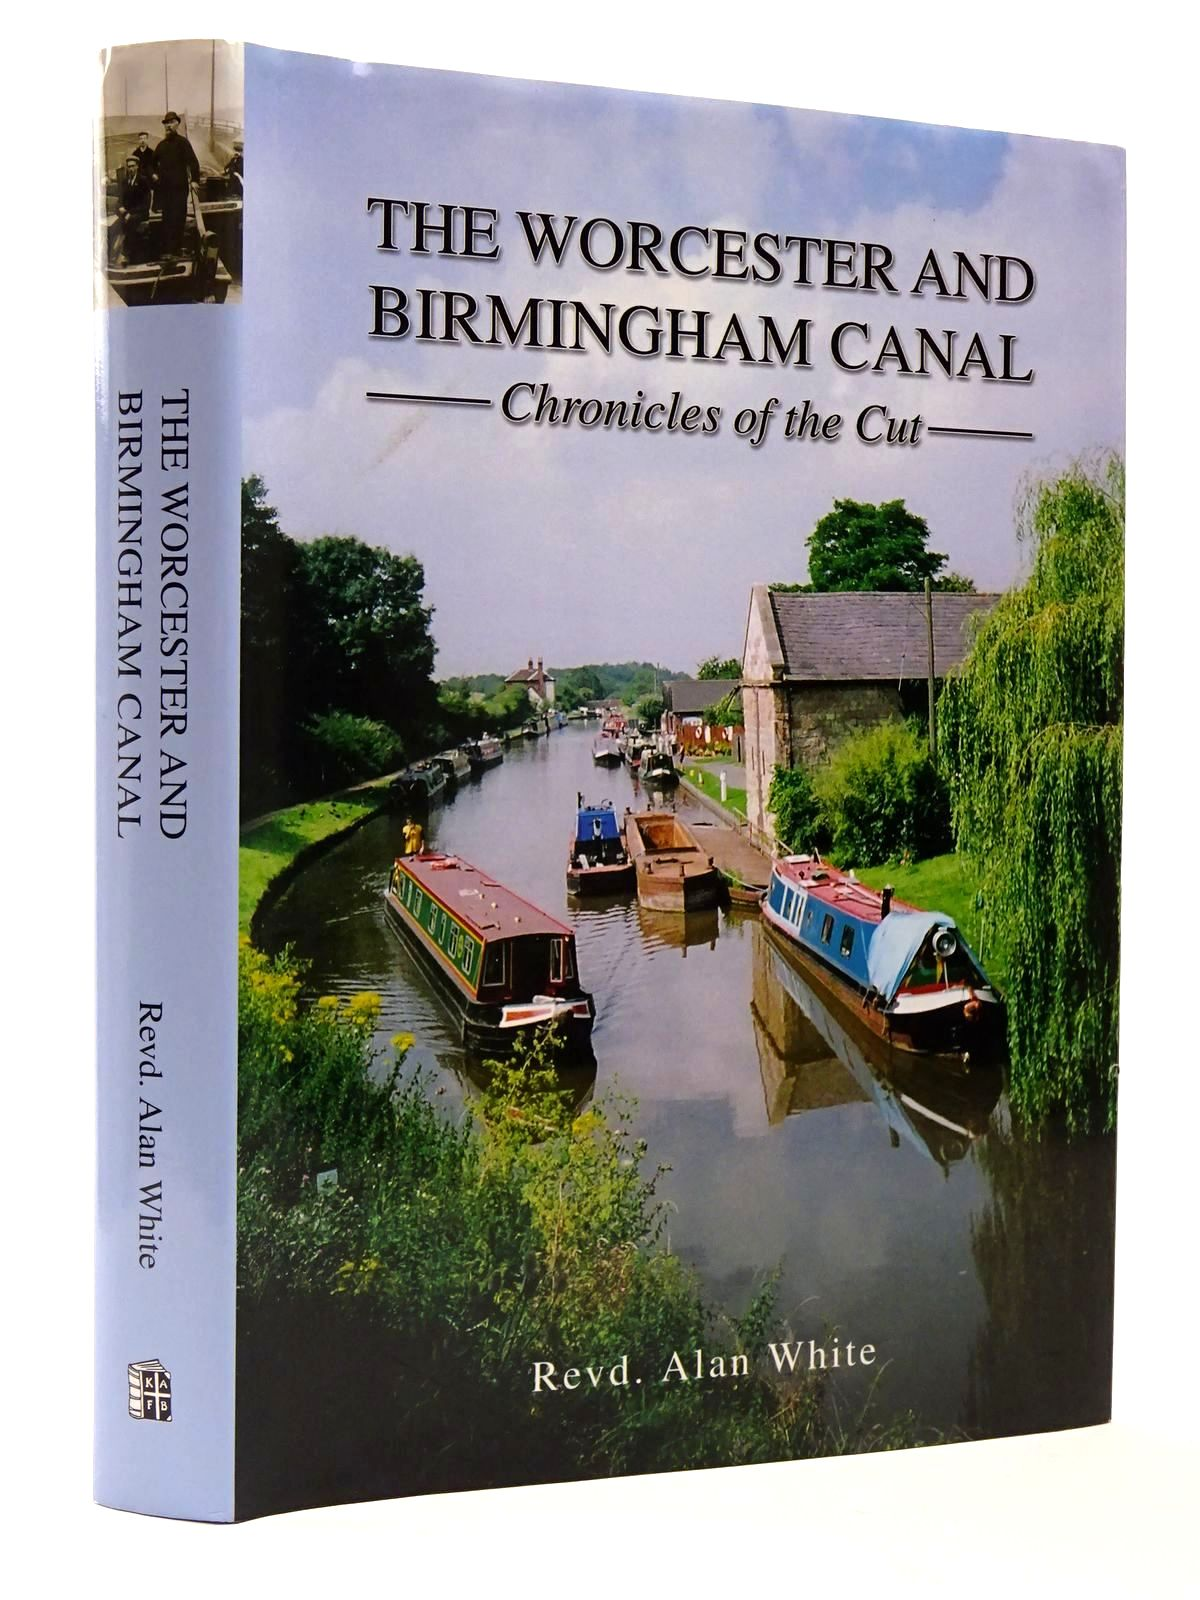 Photo of THE WORCESTER AND BIRMINGHAM CANAL CHRONICLES OF THE CUT written by White, Alan published by Brewin Books (STOCK CODE: 2129542)  for sale by Stella & Rose's Books